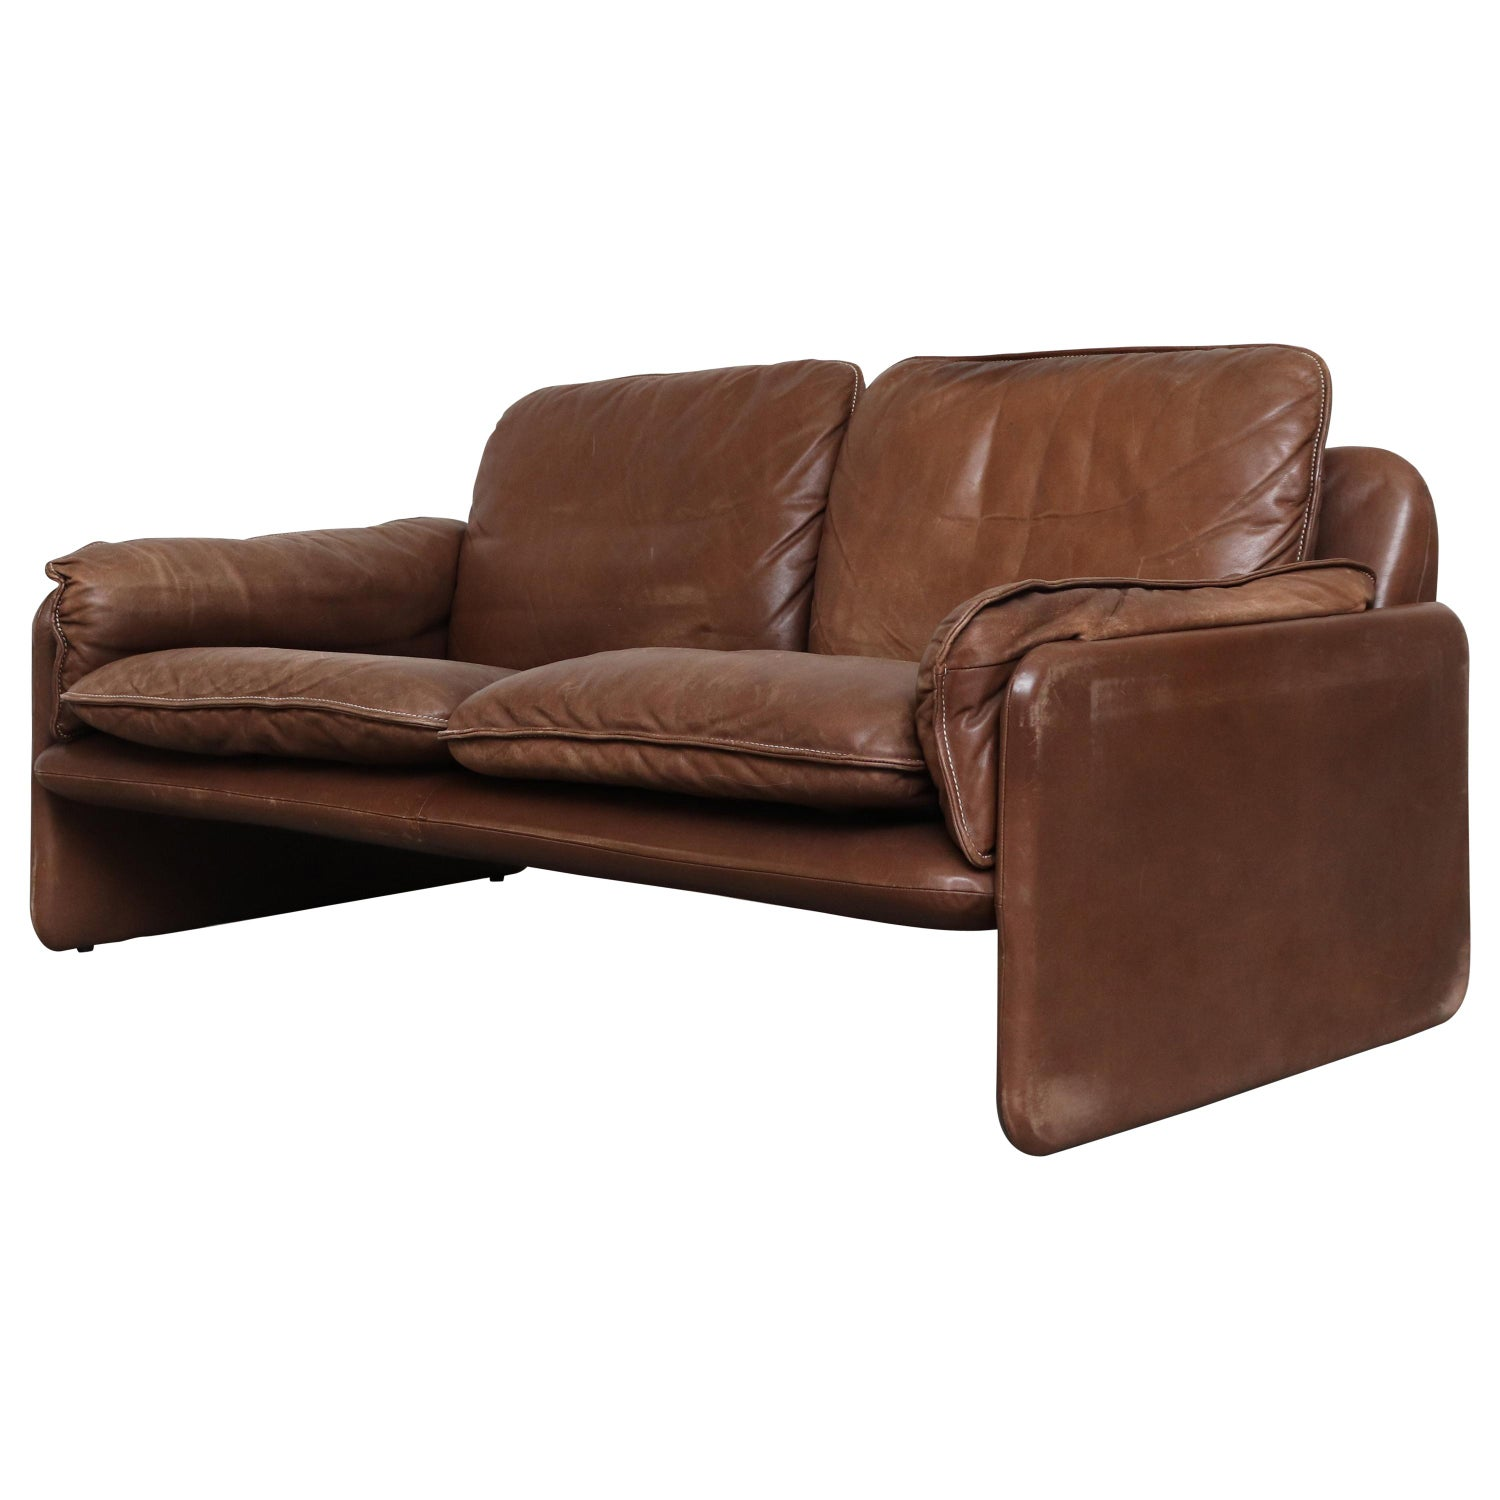 De Sede Brown DS 61 Leather Loveseat Sofa im Angebot bei 1stdibs